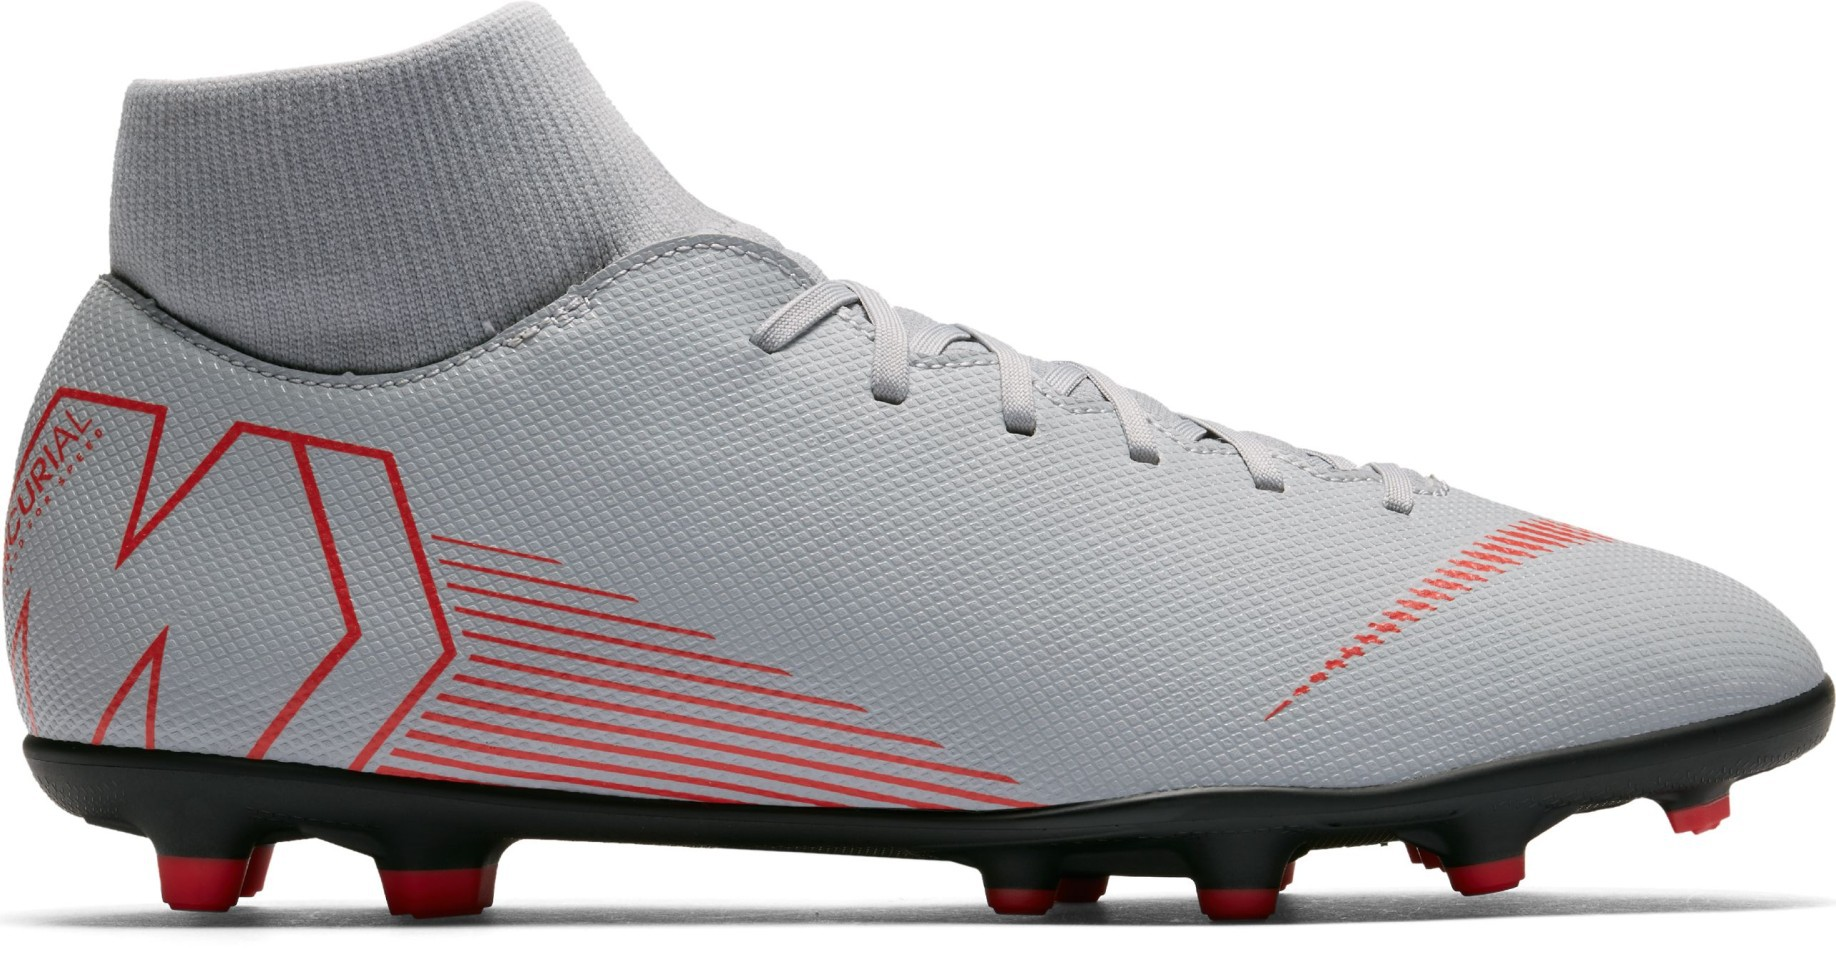 new product 408f0 4e1aa Soccer shoes Nike Mercurial Superfly VI Club MG Raised On Concrete Pack  colore Grey Pink - Nike - SportIT.com